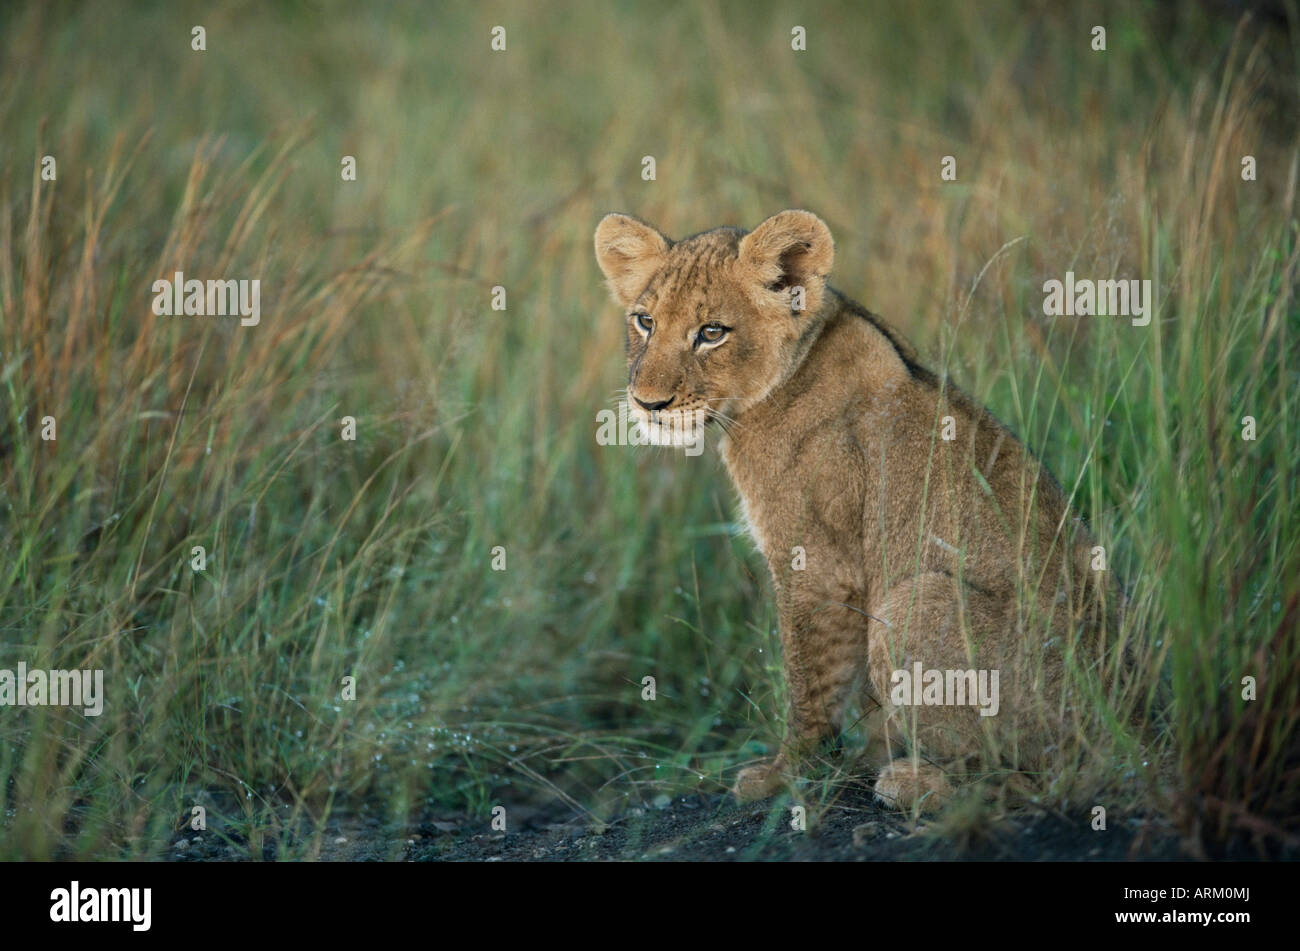 Lion cub, Panthera leo, approximately two to three months old, Kruger National Park, South Africa, Africa - Stock Image